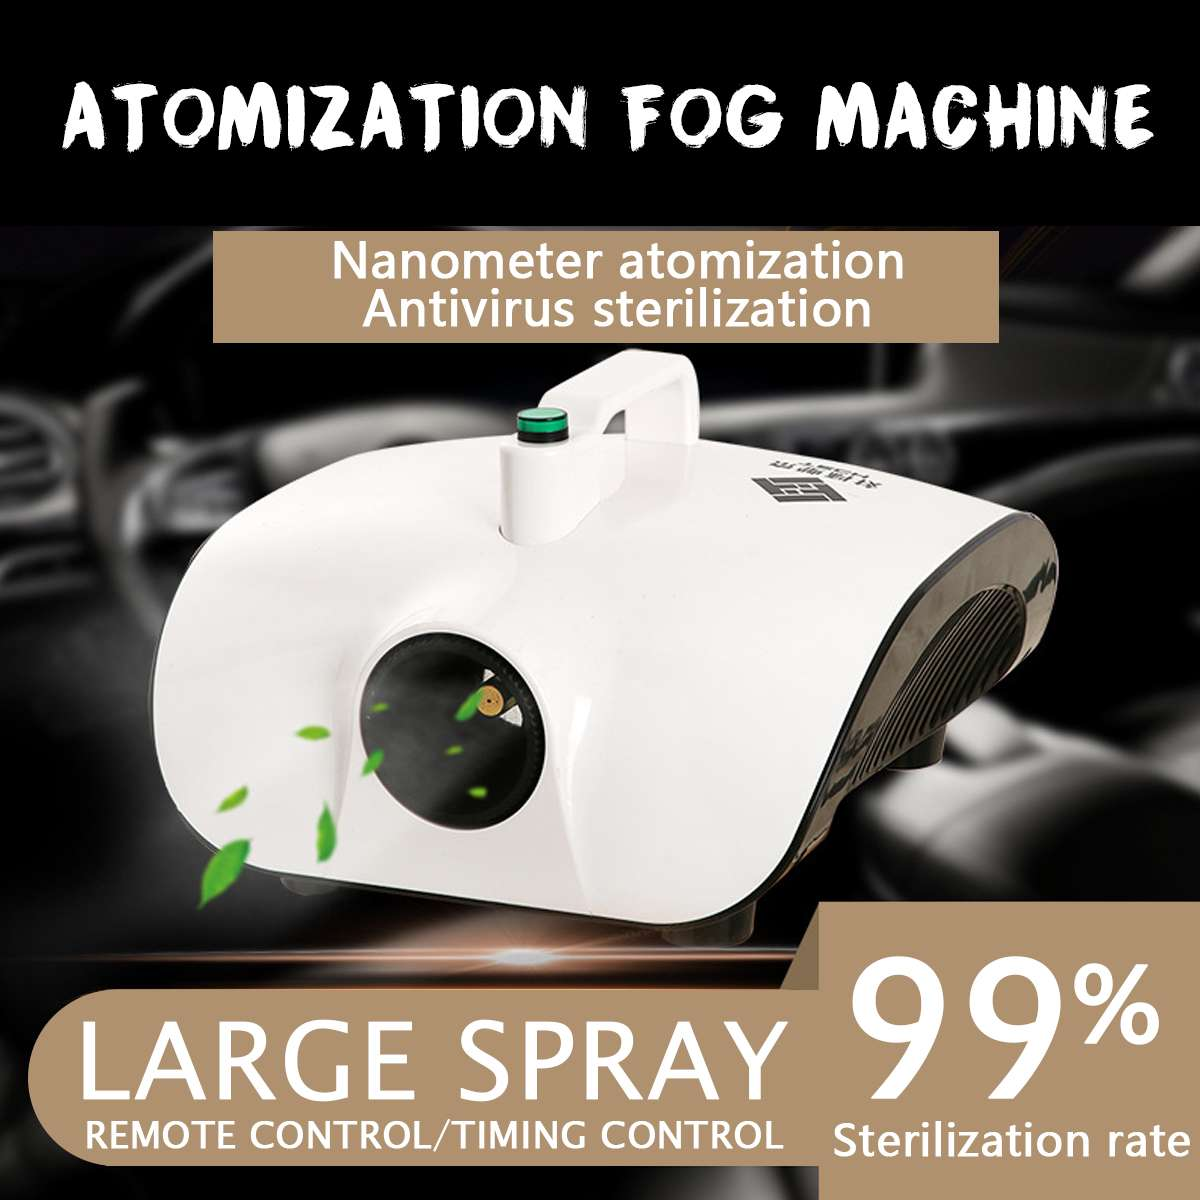 220V Portable Atomization Sterilizer Kill Bacterial Remove Peculiar Smell Remote/Timing Fog Machine Good Use For Car Room Office